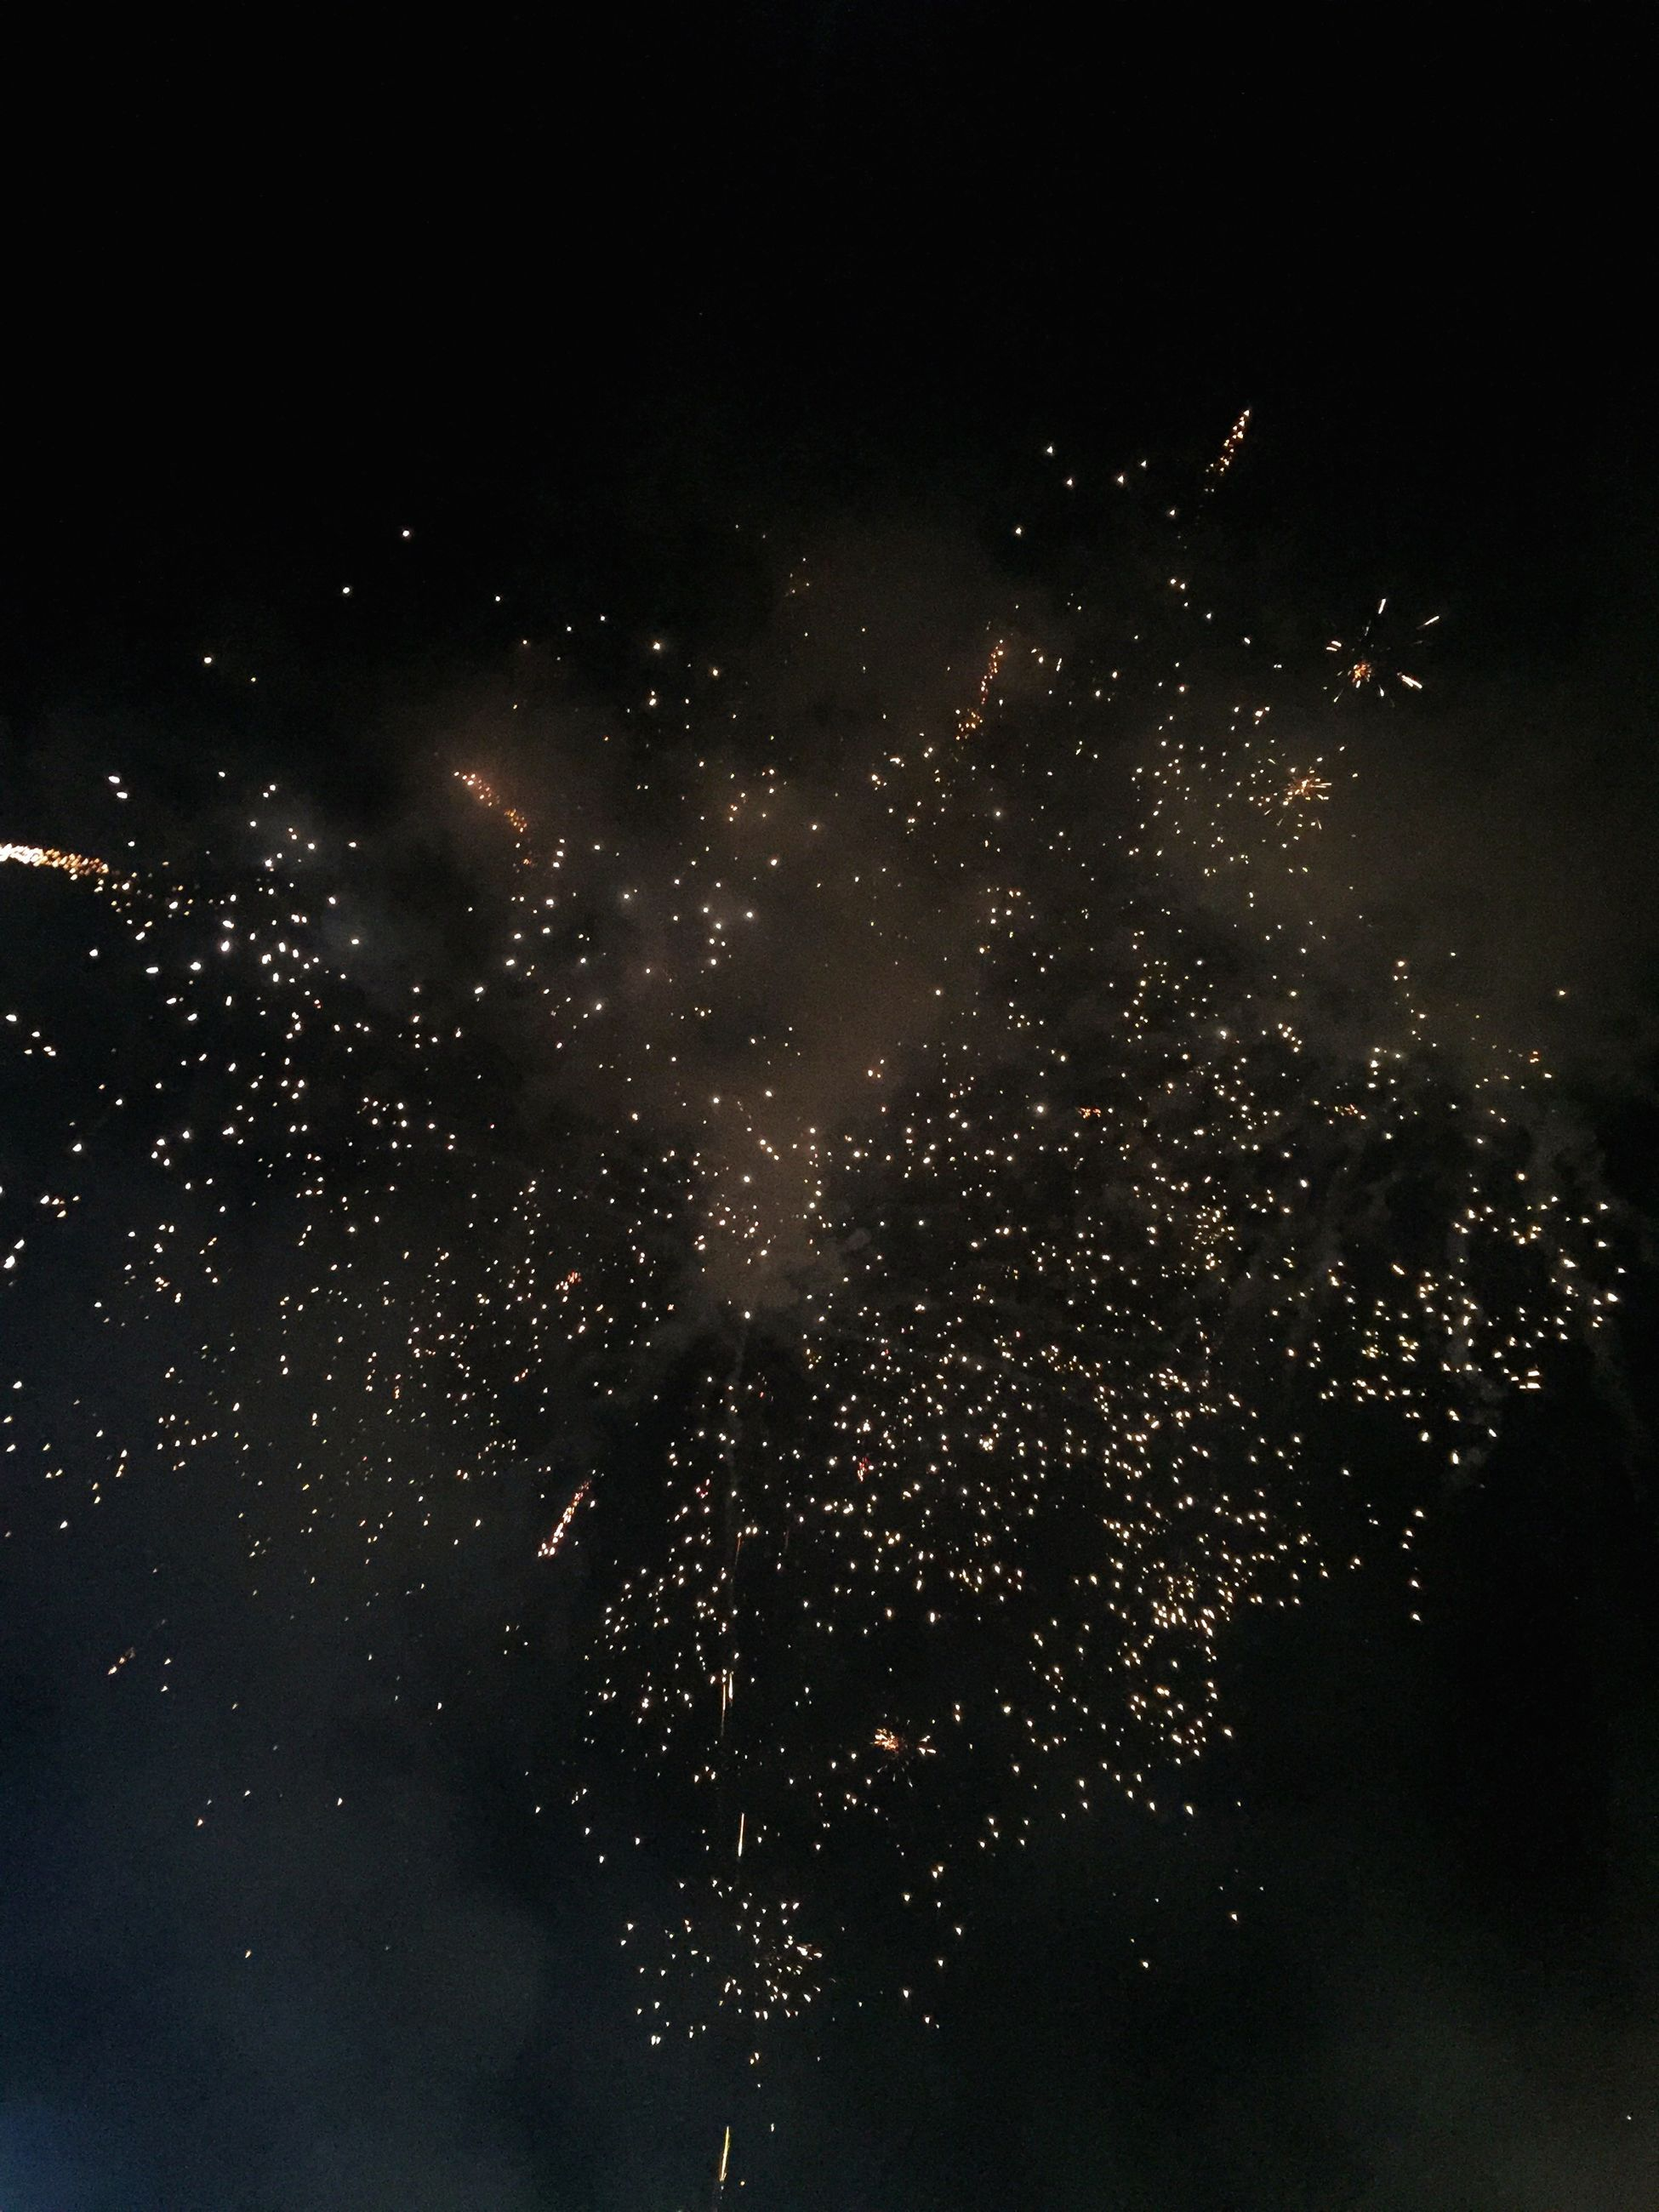 celebration, sky, black background, night, no people, exploding, motion, outdoors, firework - man made object, firework display, particle, galaxy, holi